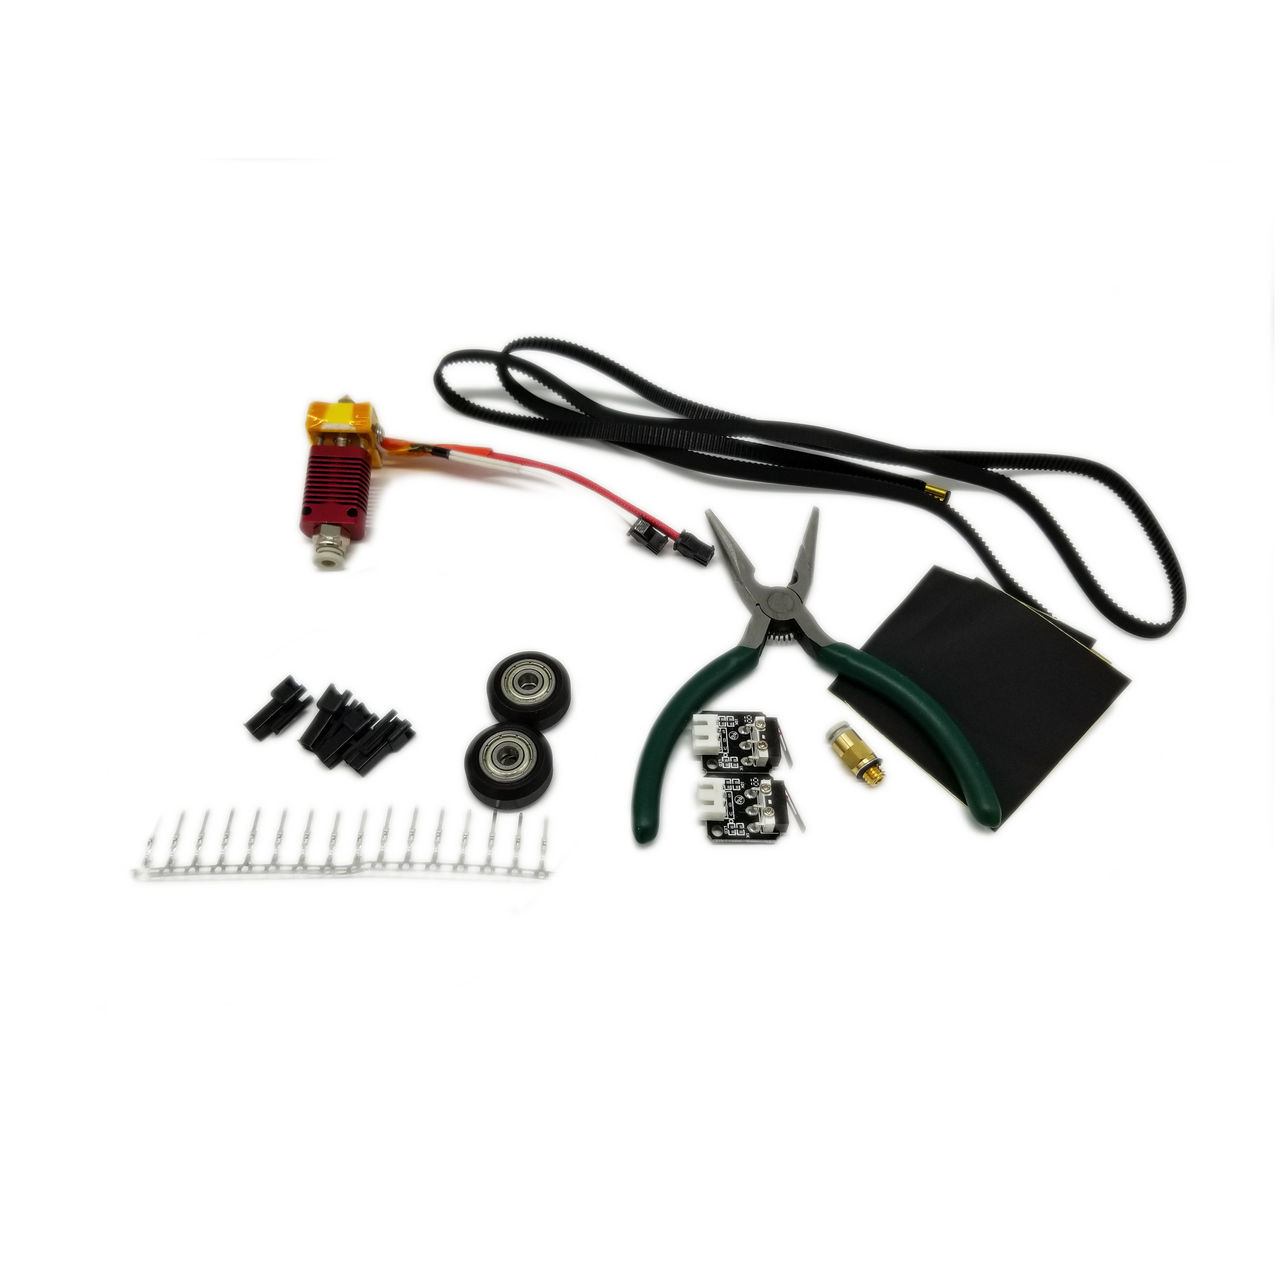 Creality CR-10 Repair Kit - 3D Printer Canada